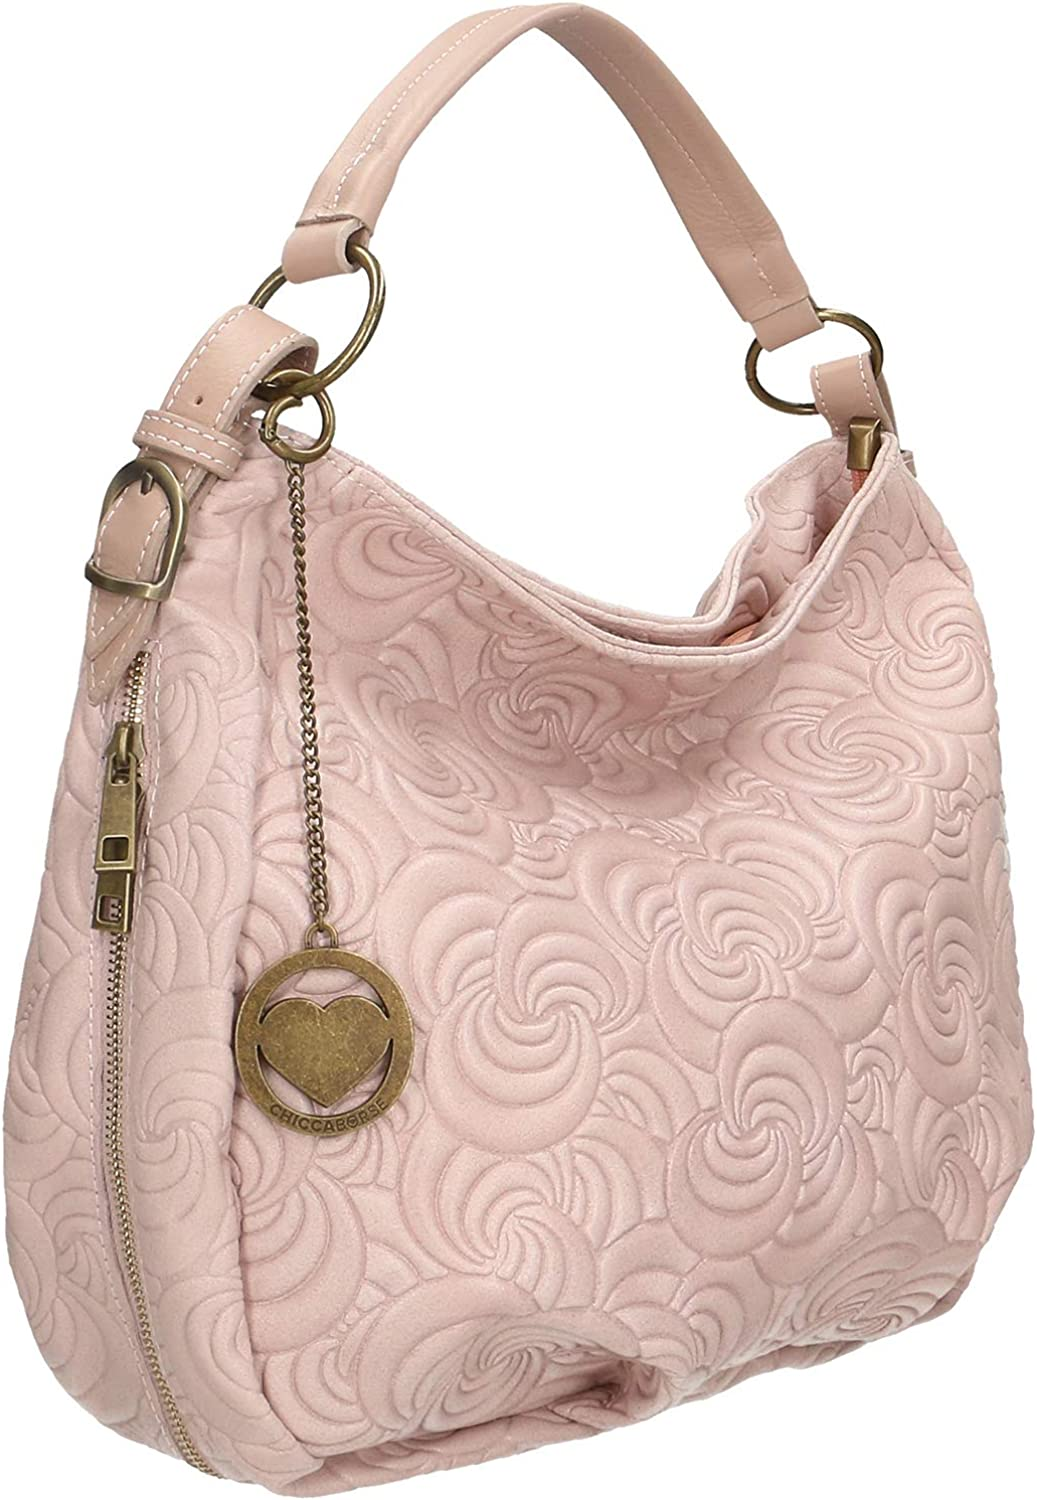 Chicca Borse Bag Borsa a Mano in Pelle Made in Italy 33x33x13 cm Rosa